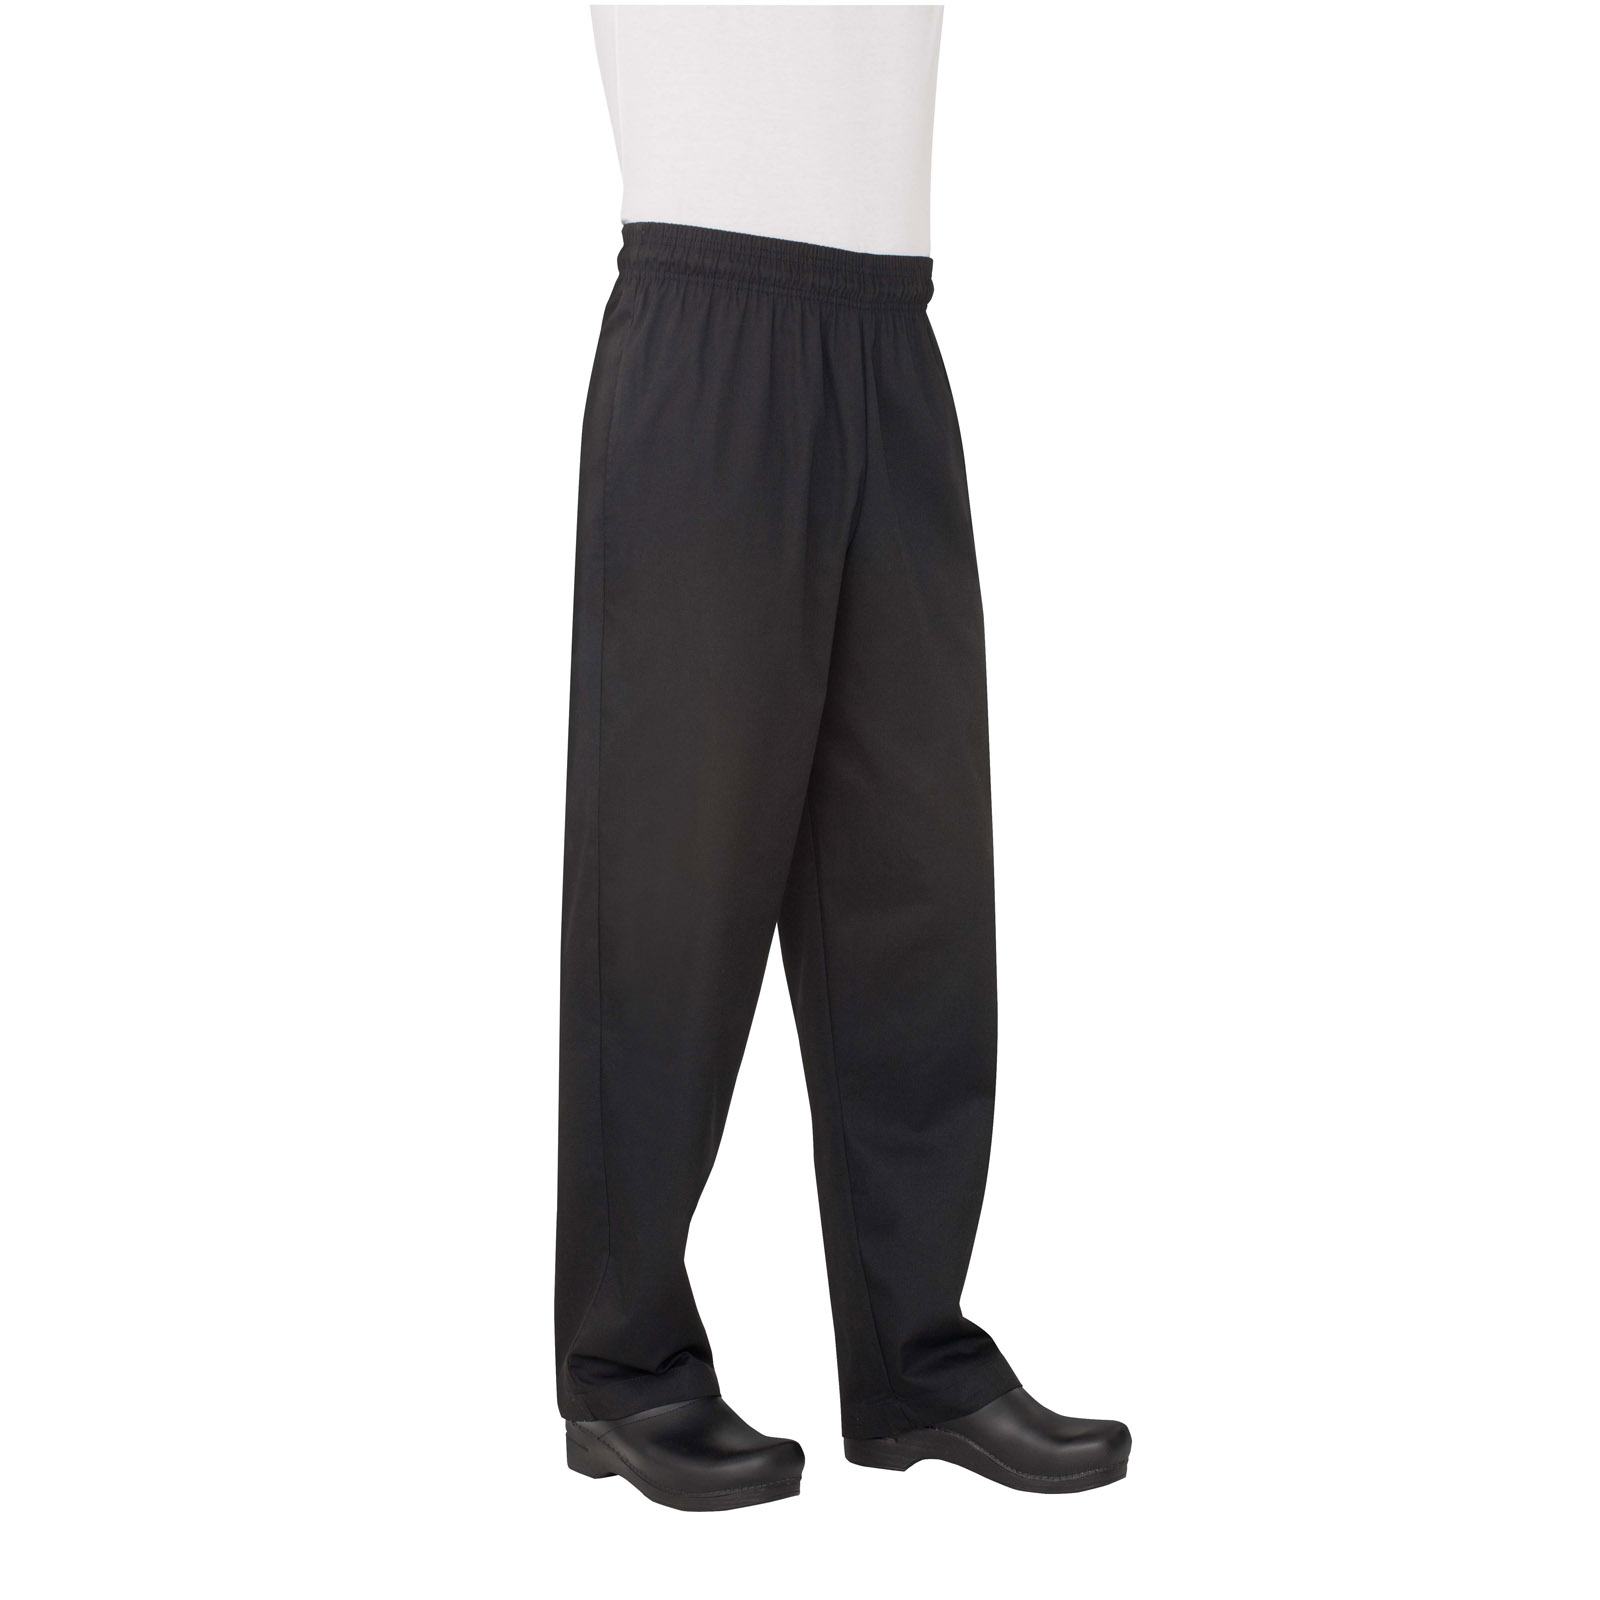 NBBP000S Chef Works chef's pants